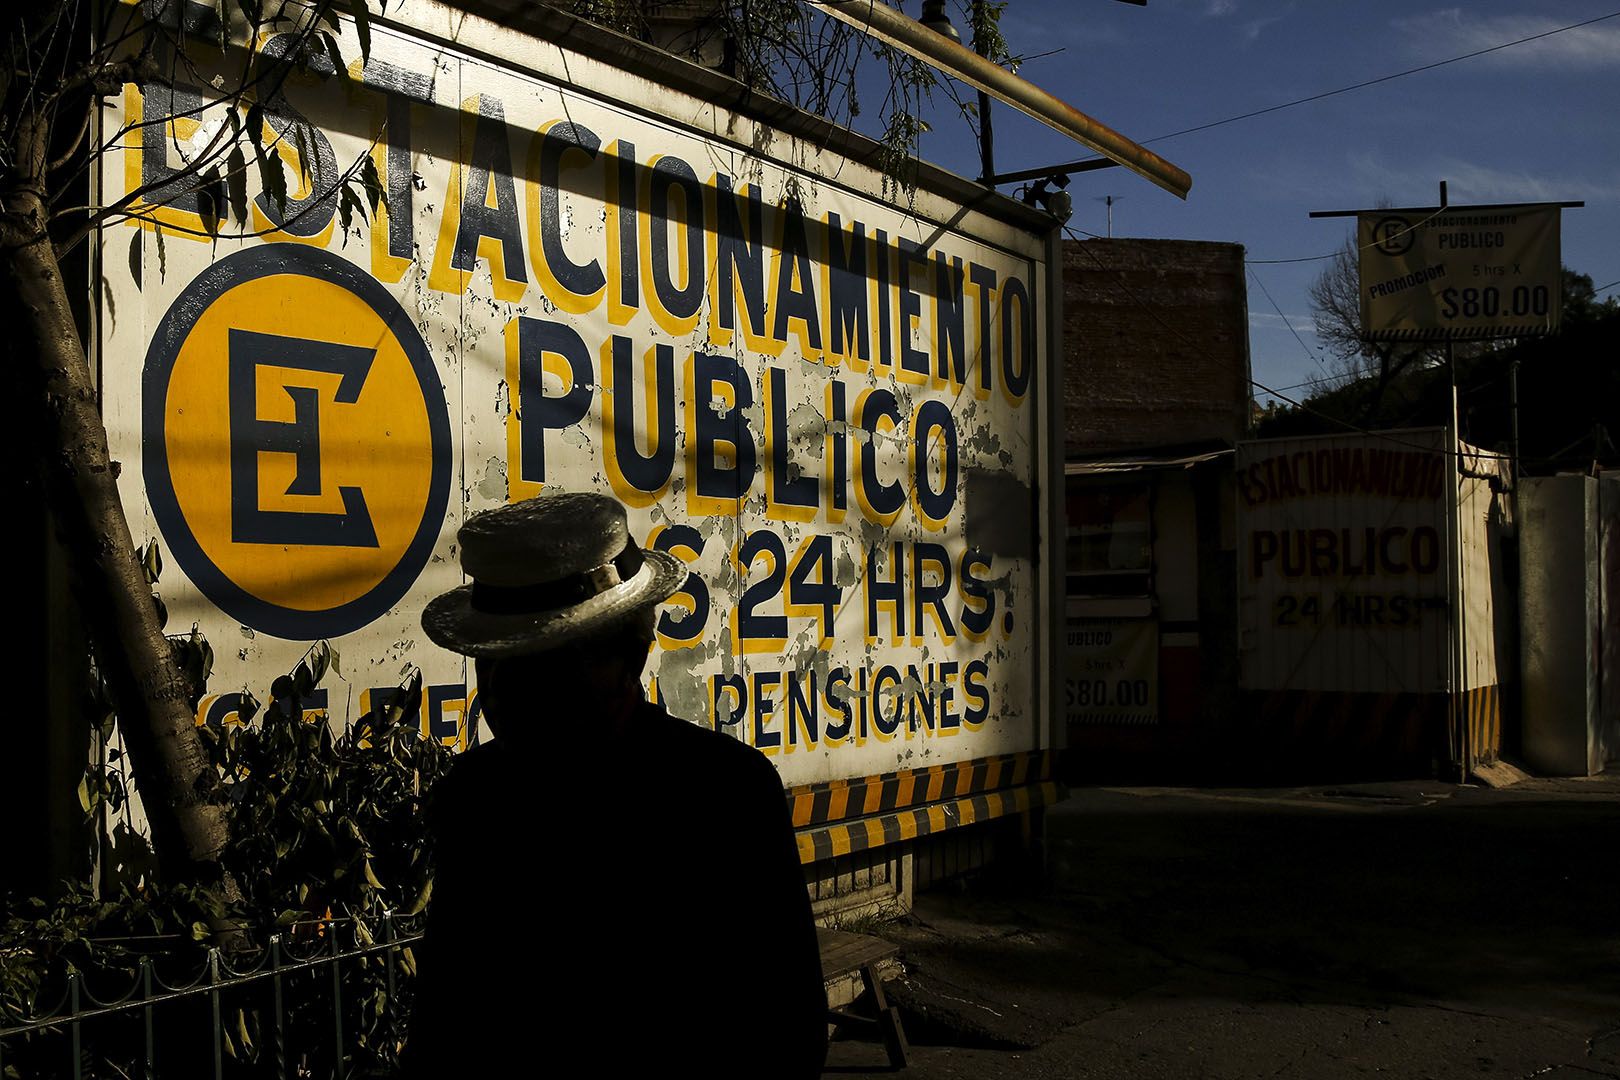 A person wearing a hat walks in front of a large hand-painted sign in Mexico City.